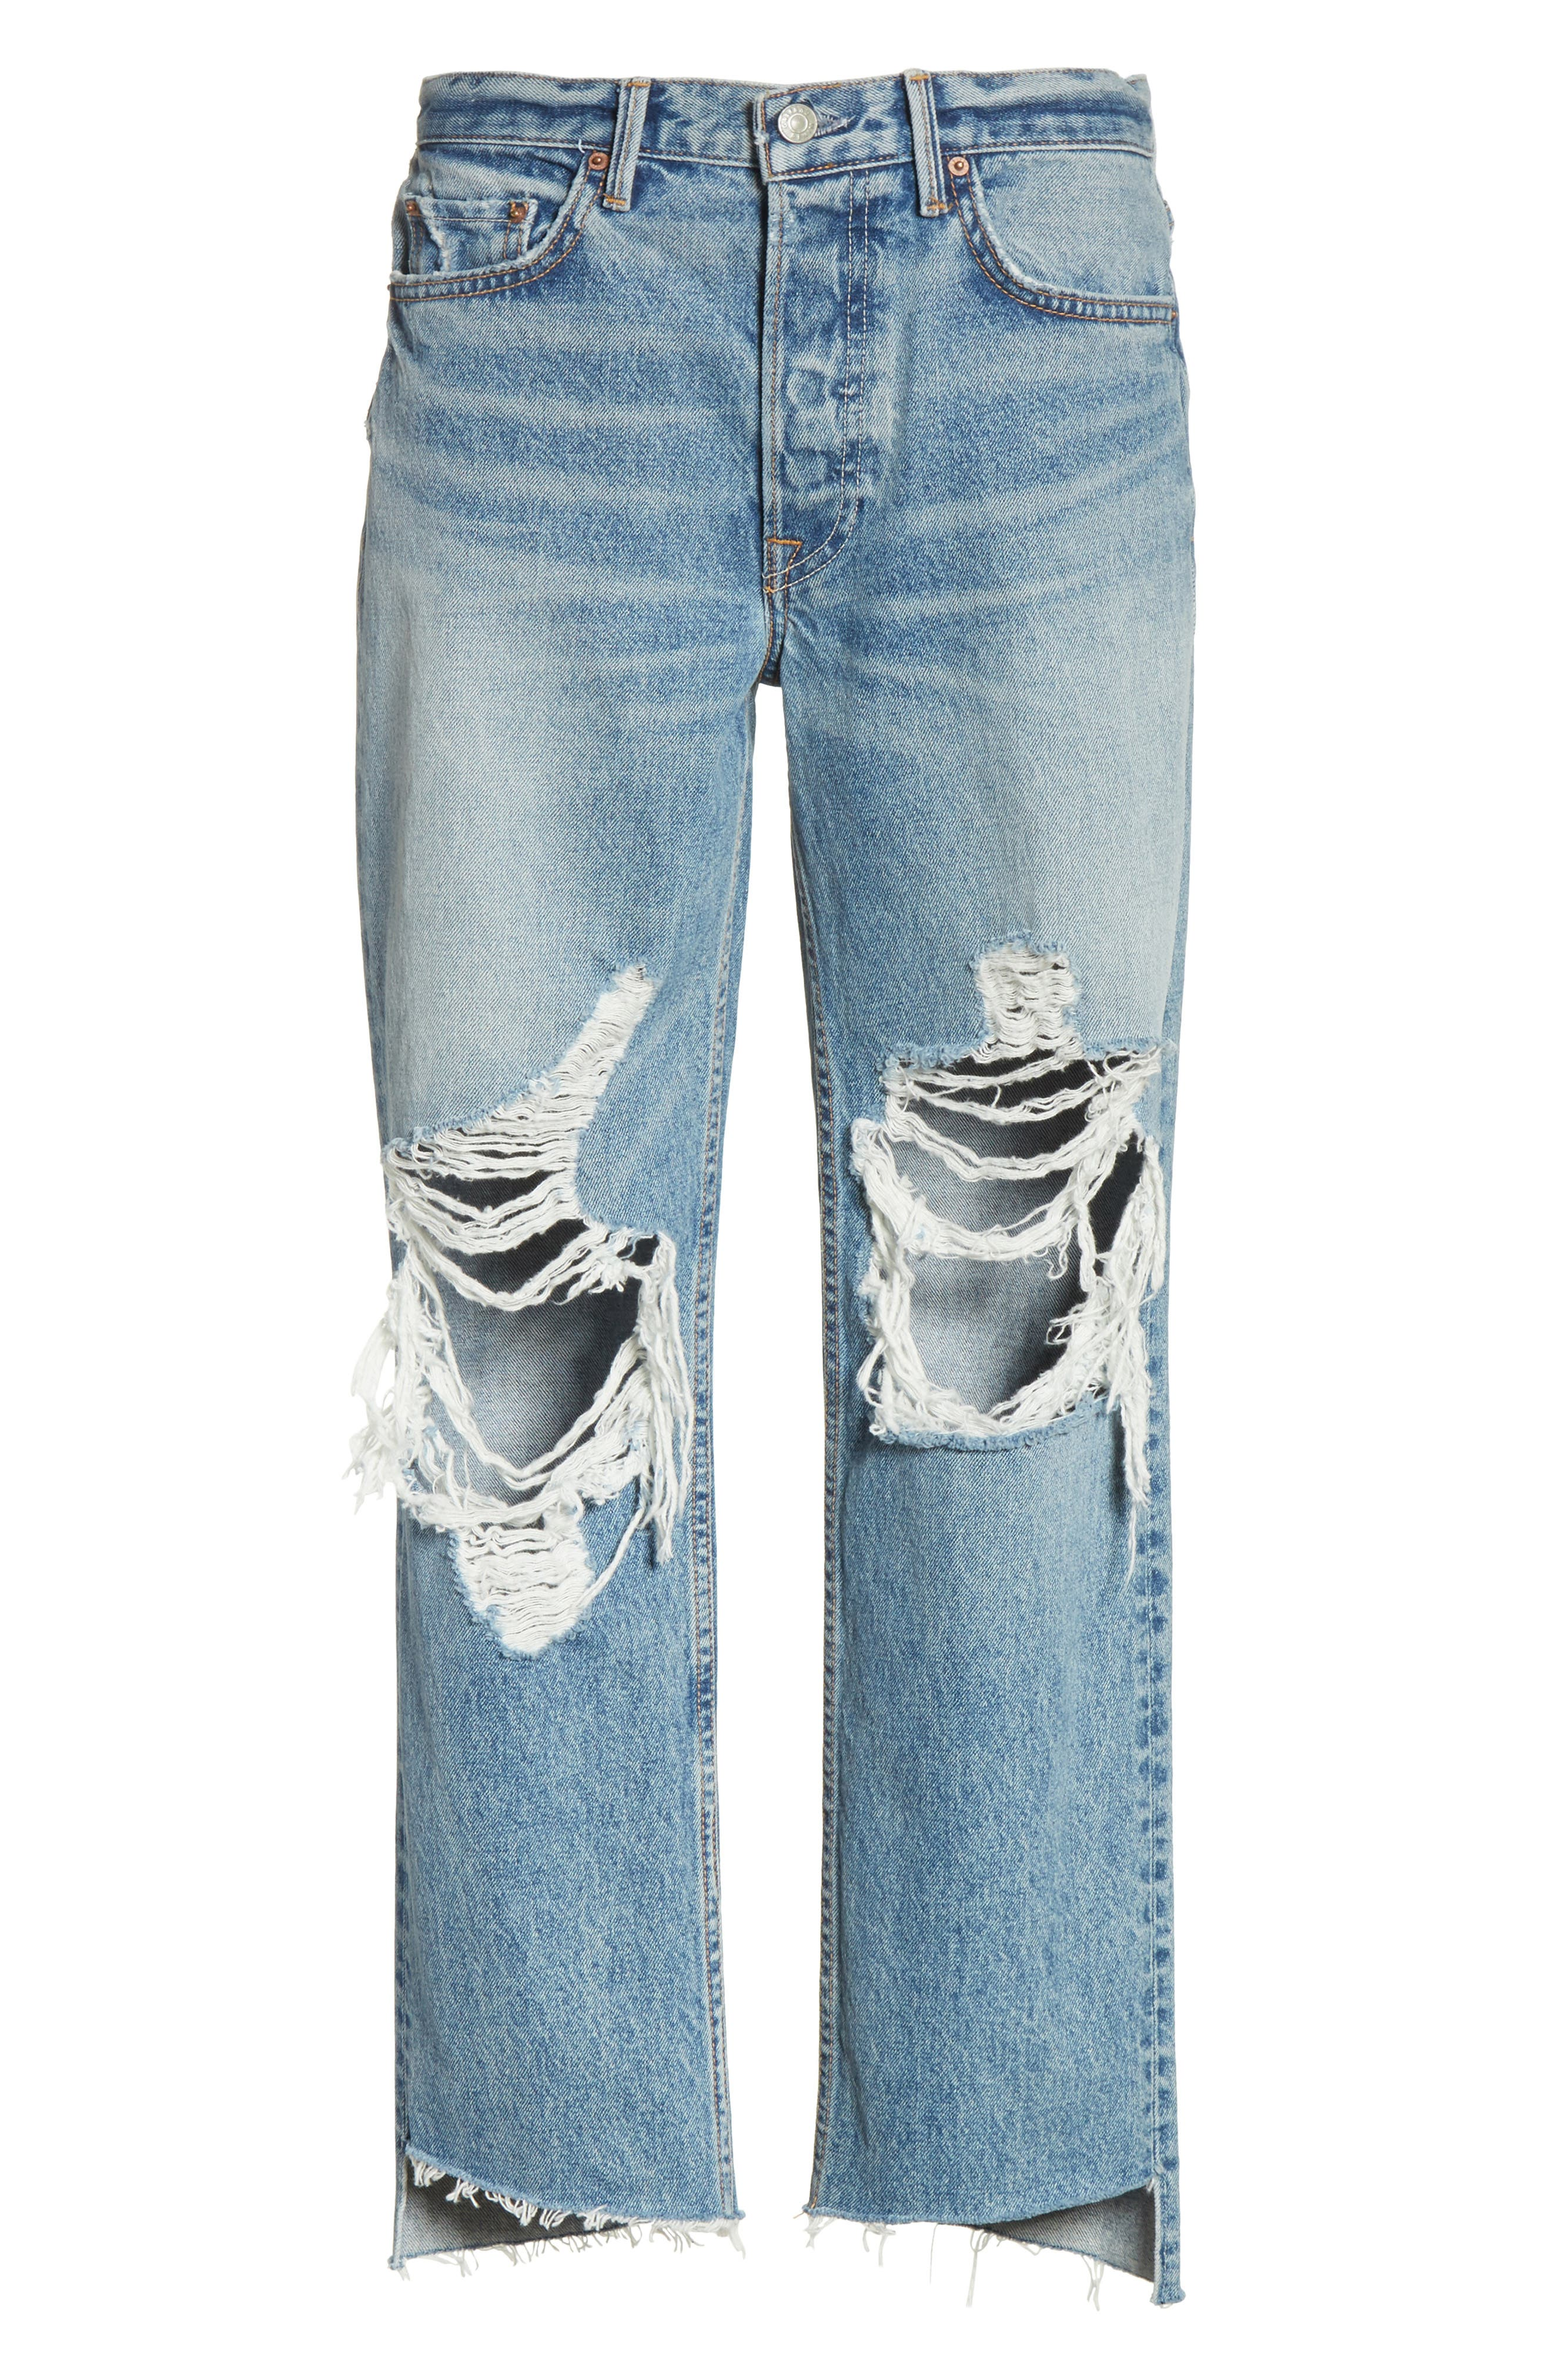 Helena Ripped Rigid High Waist Straight Jeans,                             Alternate thumbnail 7, color,                             Its Cold Out